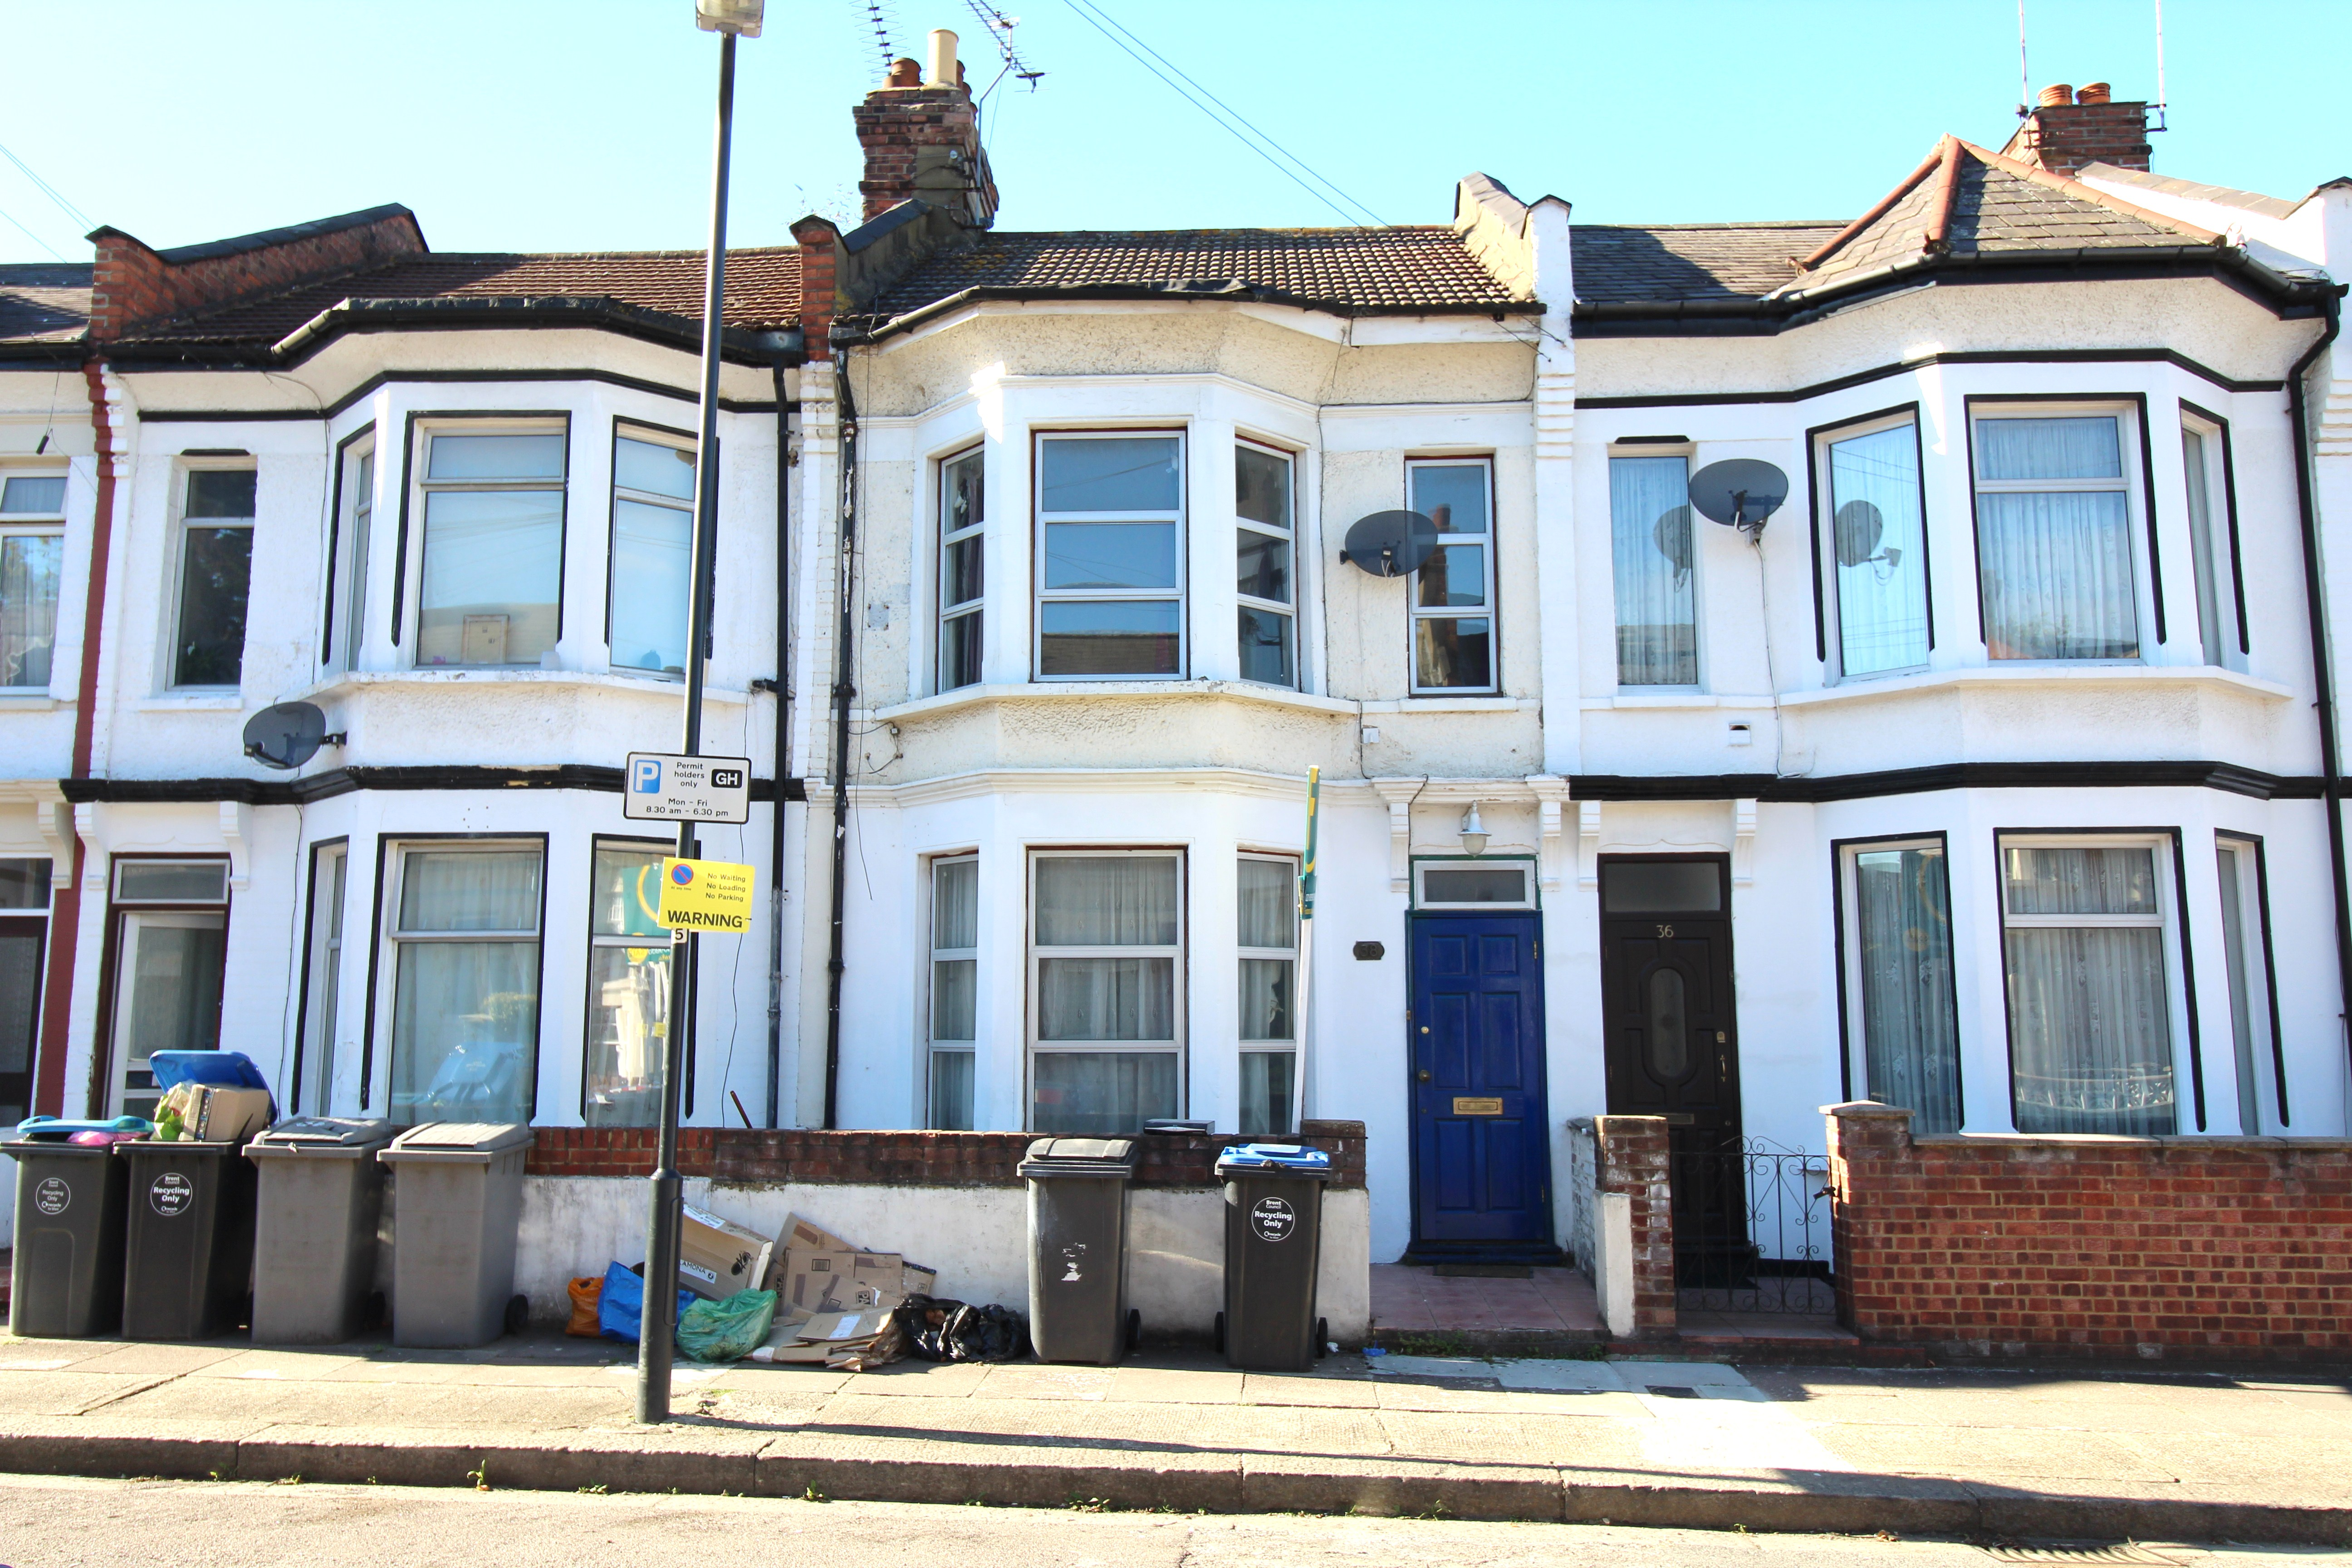 c9554e3542 VICTORIAN FREEHOLD HOUSE DIVIDED AS A 3 BED 2 BATH DUPLEX GARDEN FLAT   1  BED FLAT